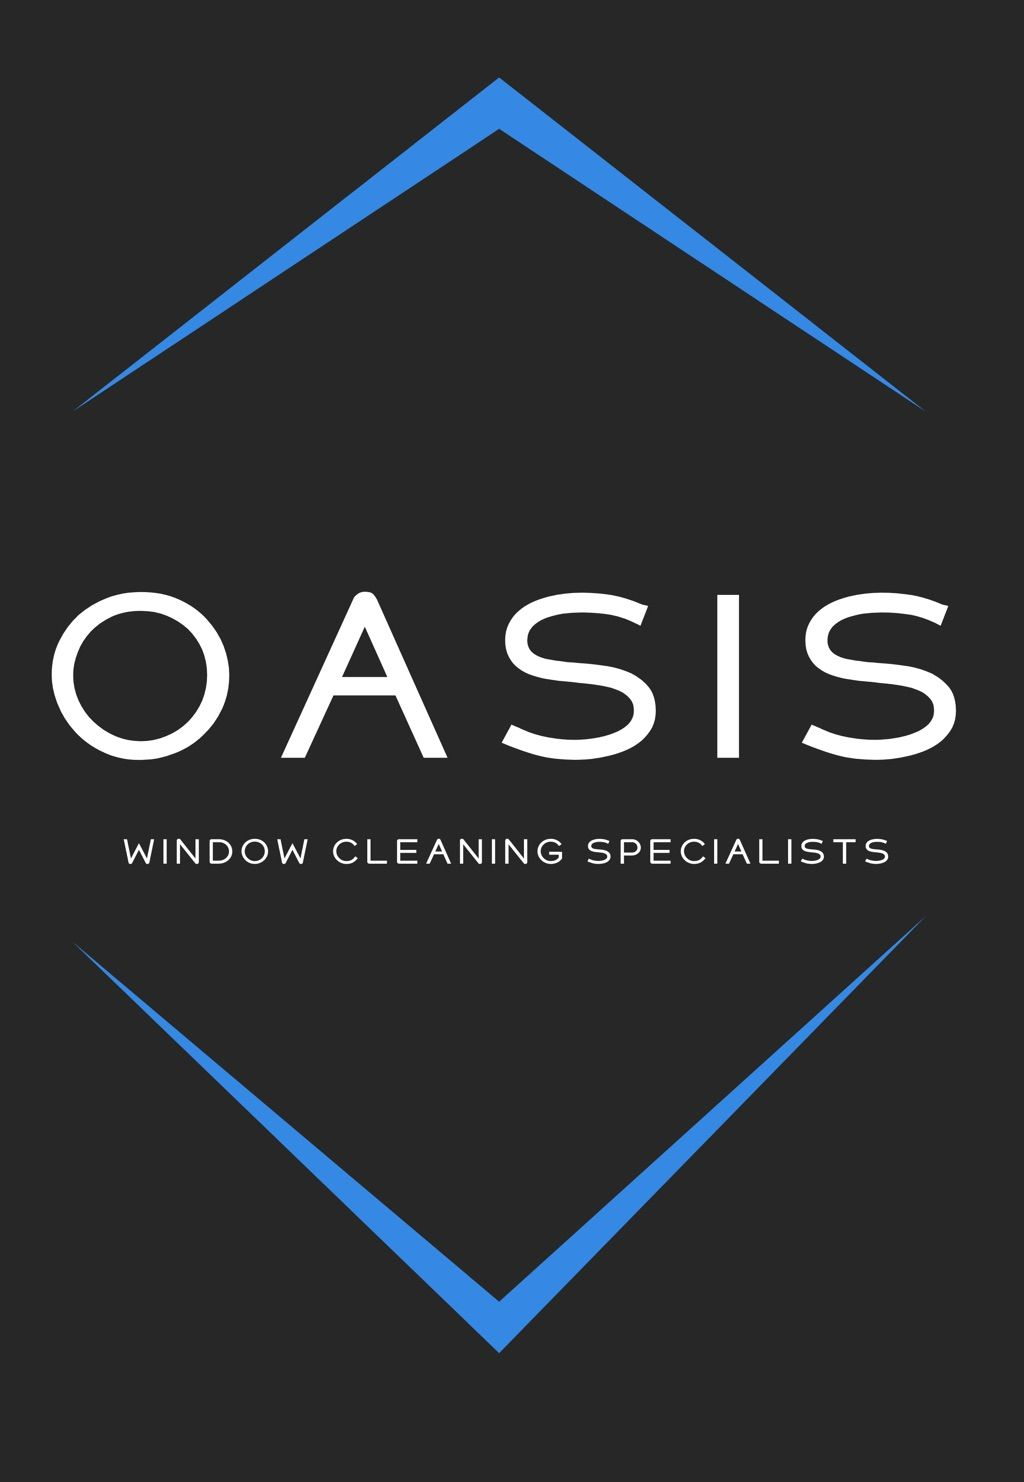 Oasis Window & Exterior Cleaning Services